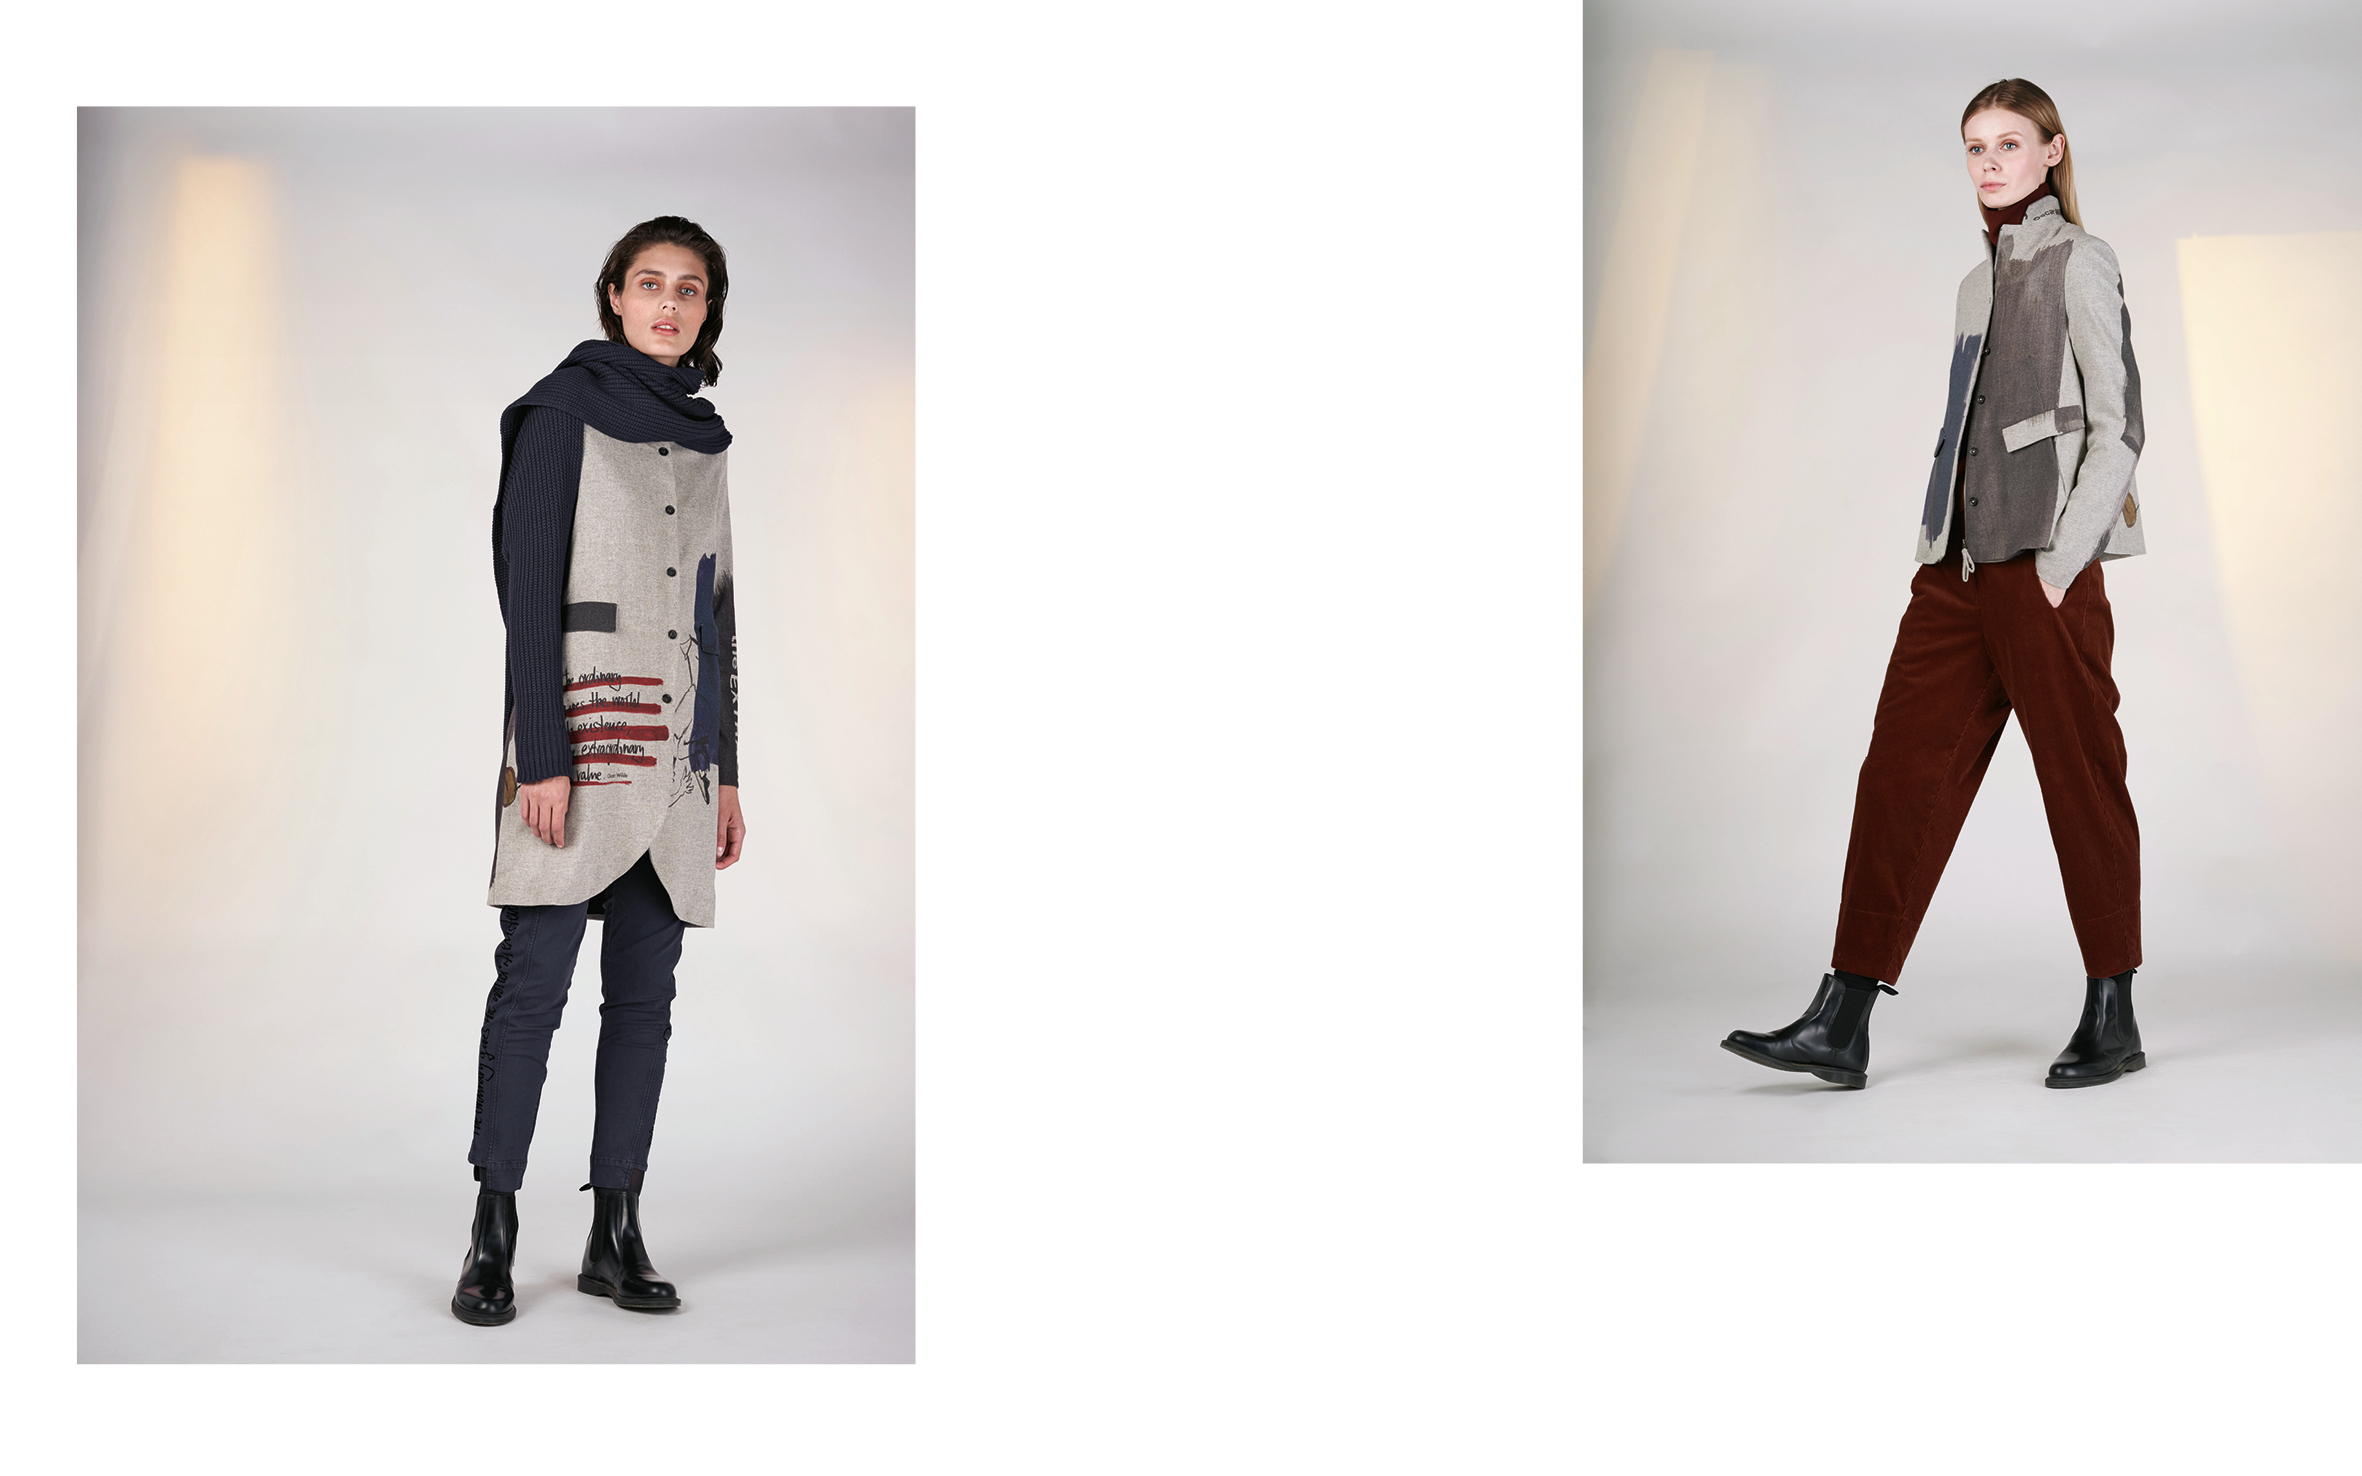 LEFT: jacket KINA 1 27113-40 | pants VEGAS 1 27160-66 | scarf SIM 27503-66  RIGHT: jacket KILIS 1 27113-40 | jumper BUCK 27500-05 | pants FER 27107-05